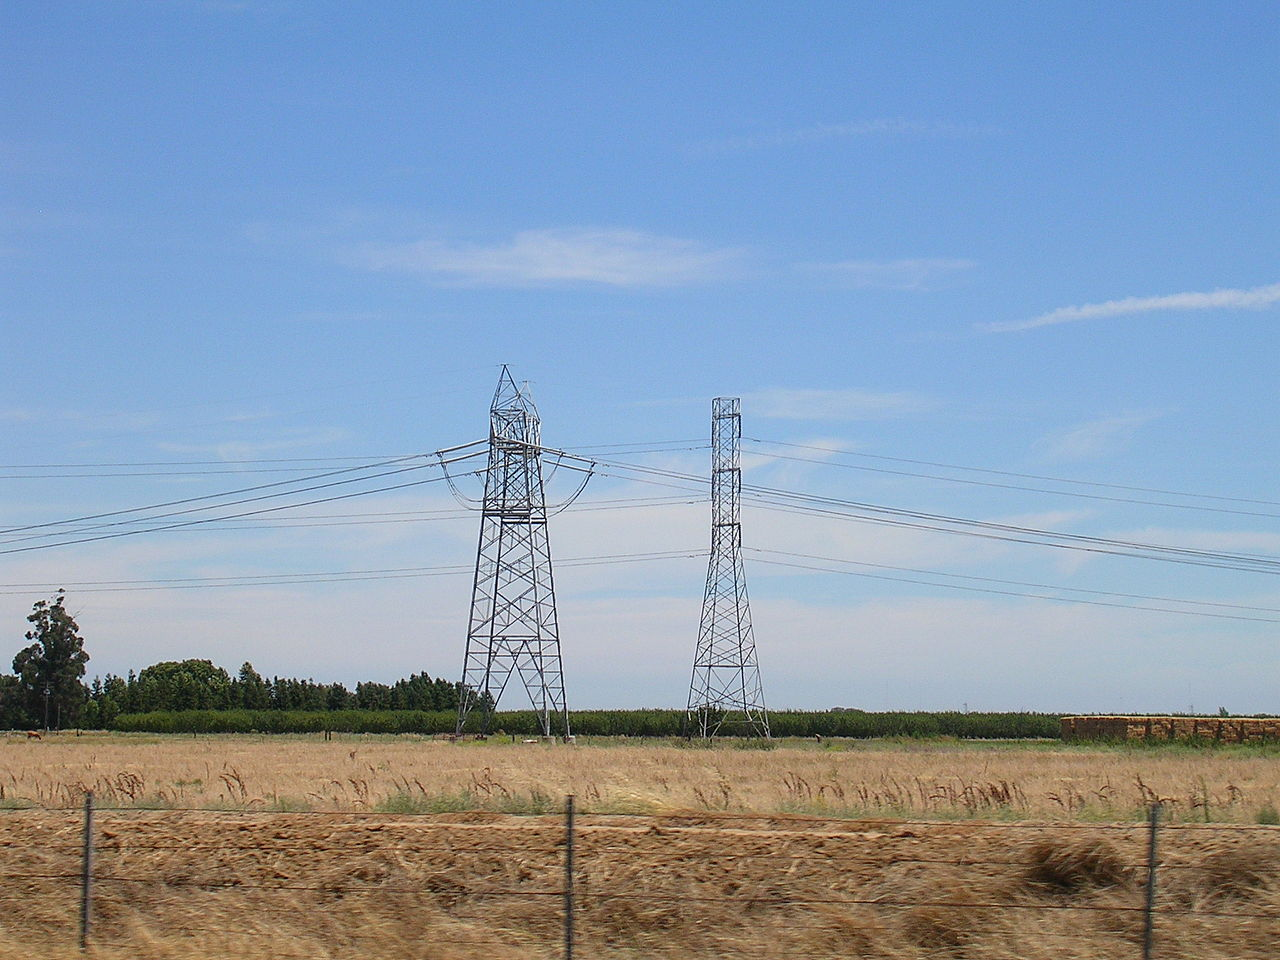 Power lines and towers surrounded by dry, yellow grass.